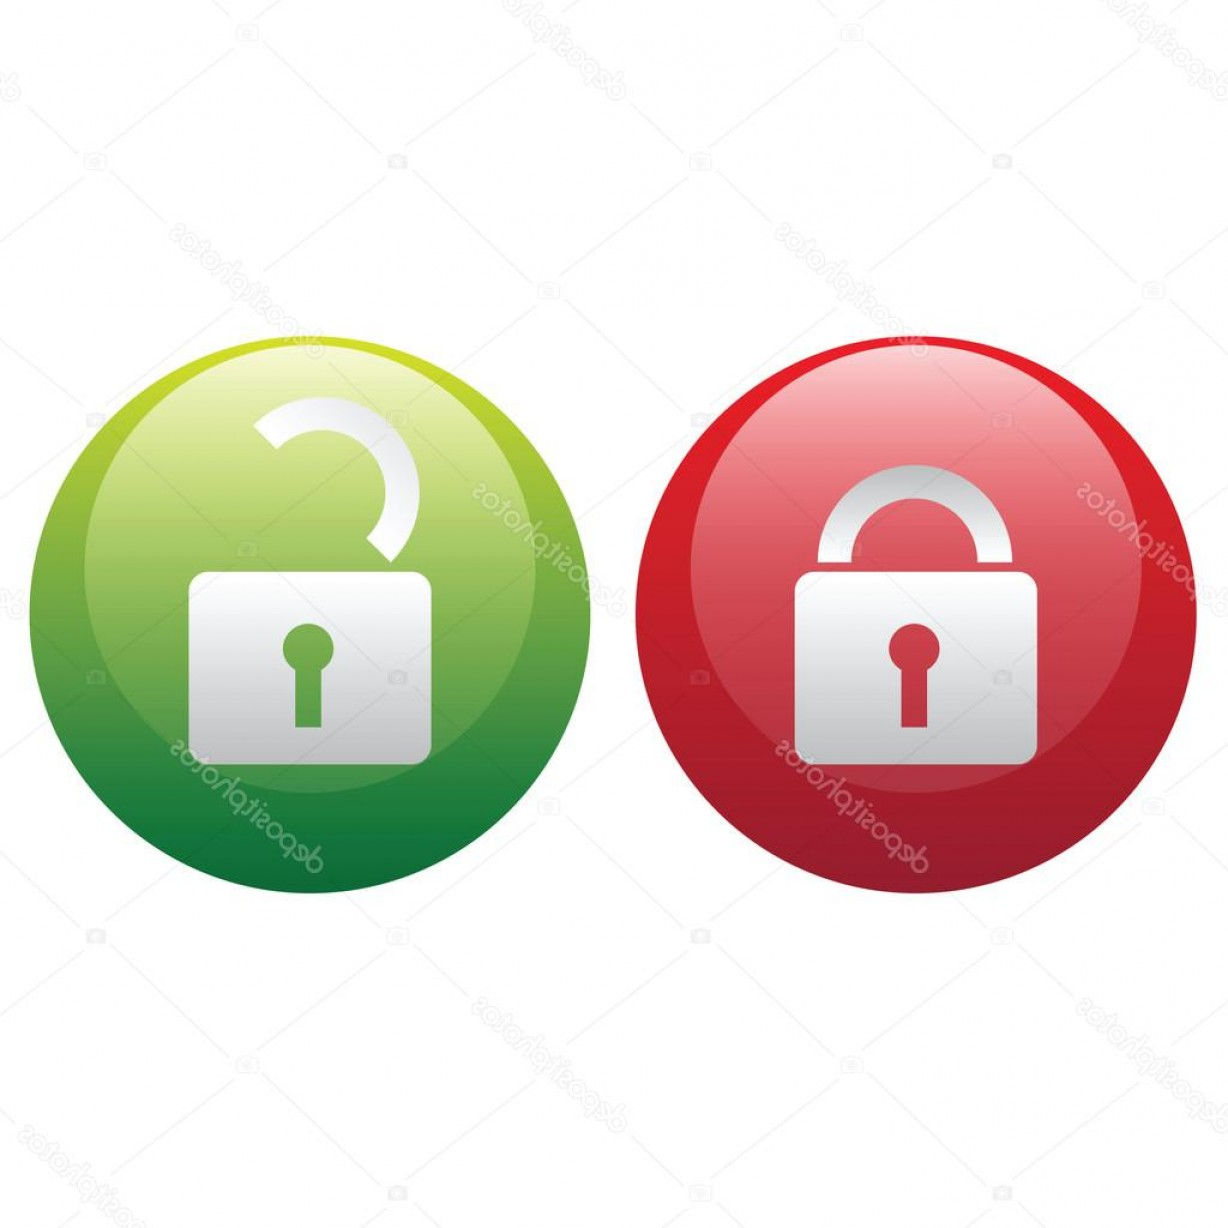 Lock Unlock Icon Vector: Stock Illustration Vector Lock Unlock Illustration Icons